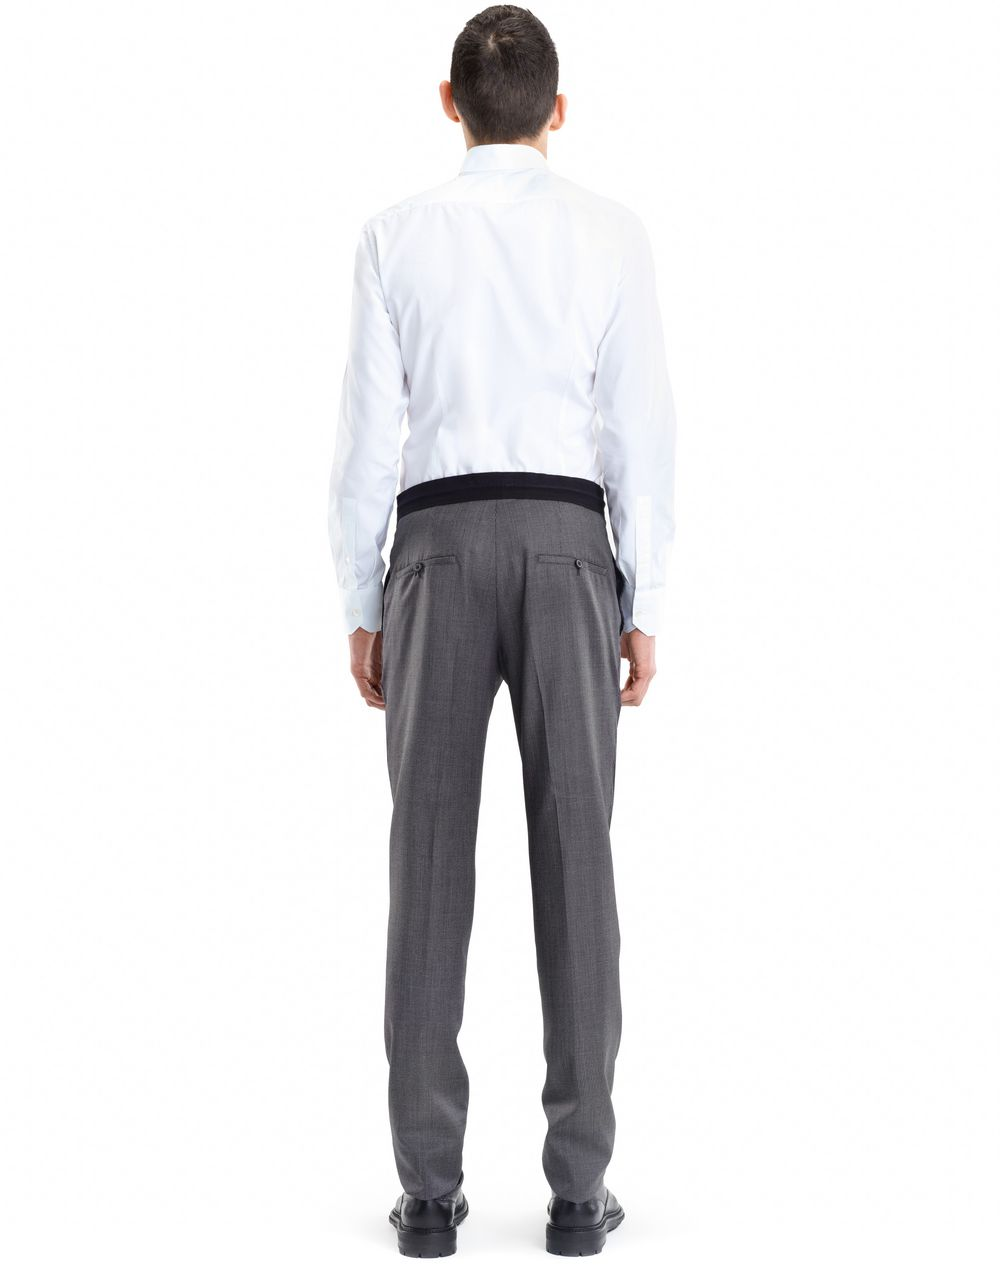 SLIM-FIT PANTS WITH GROSGRAIN BELT - Lanvin